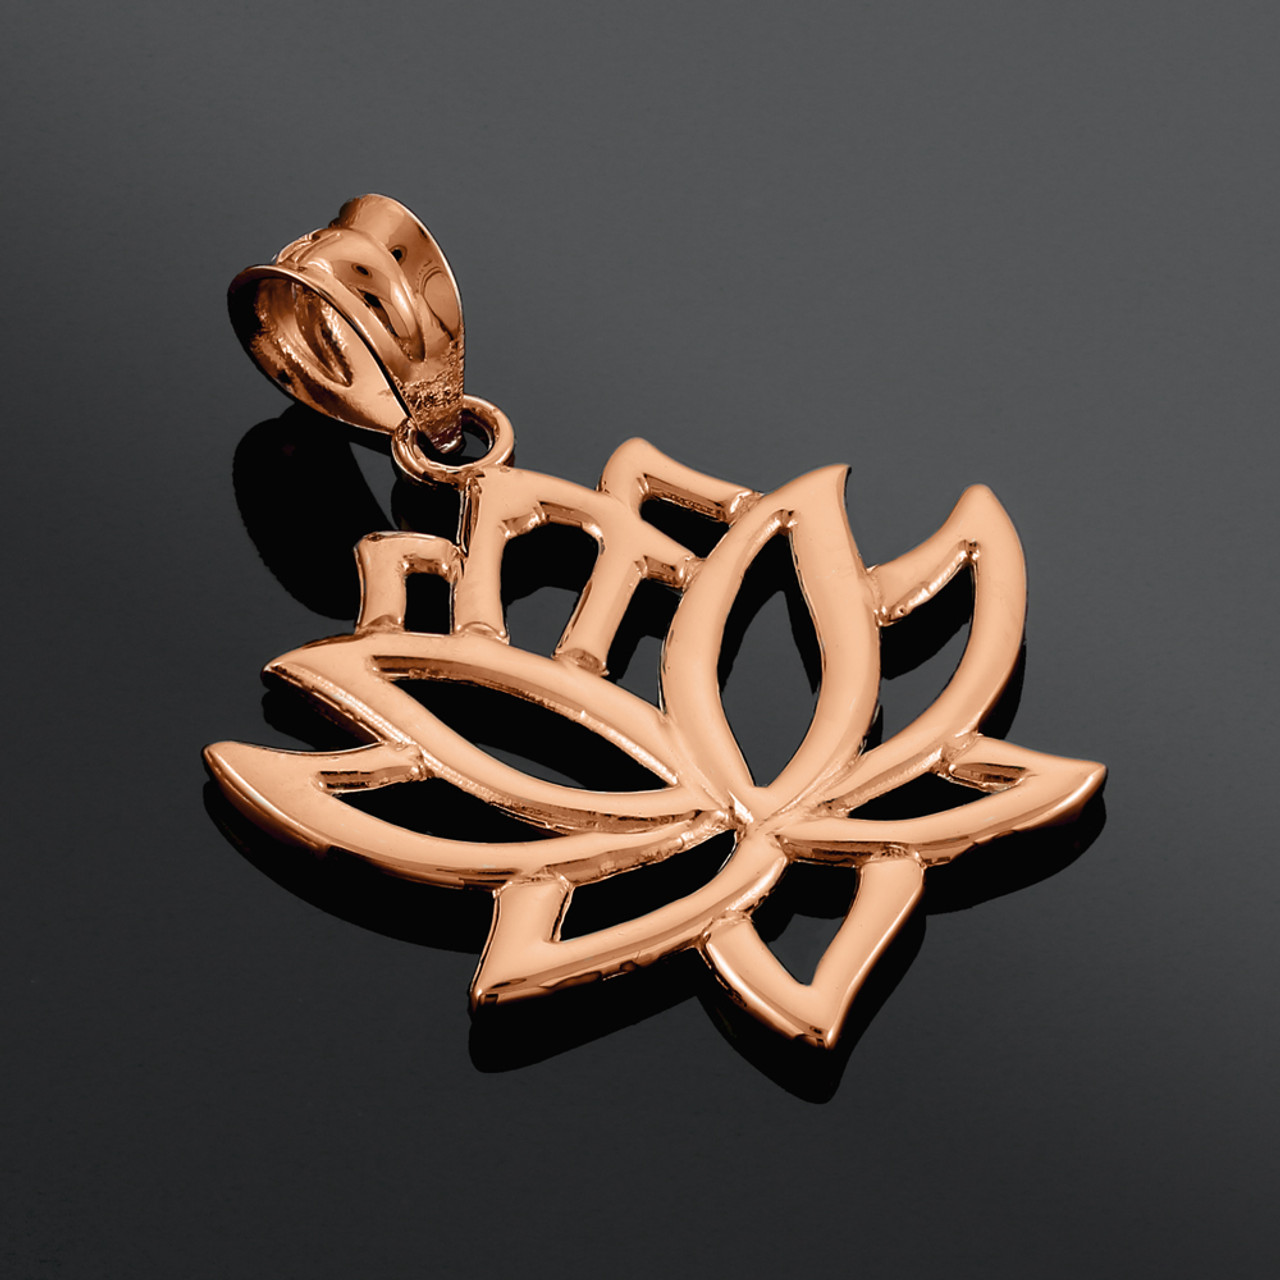 Brass Lotus Flower Pendant With 1 Loop,Earring Findings Necklace Pendant 14x26mm-RSGLD-136 Rose Gold Plated Flower Pendant